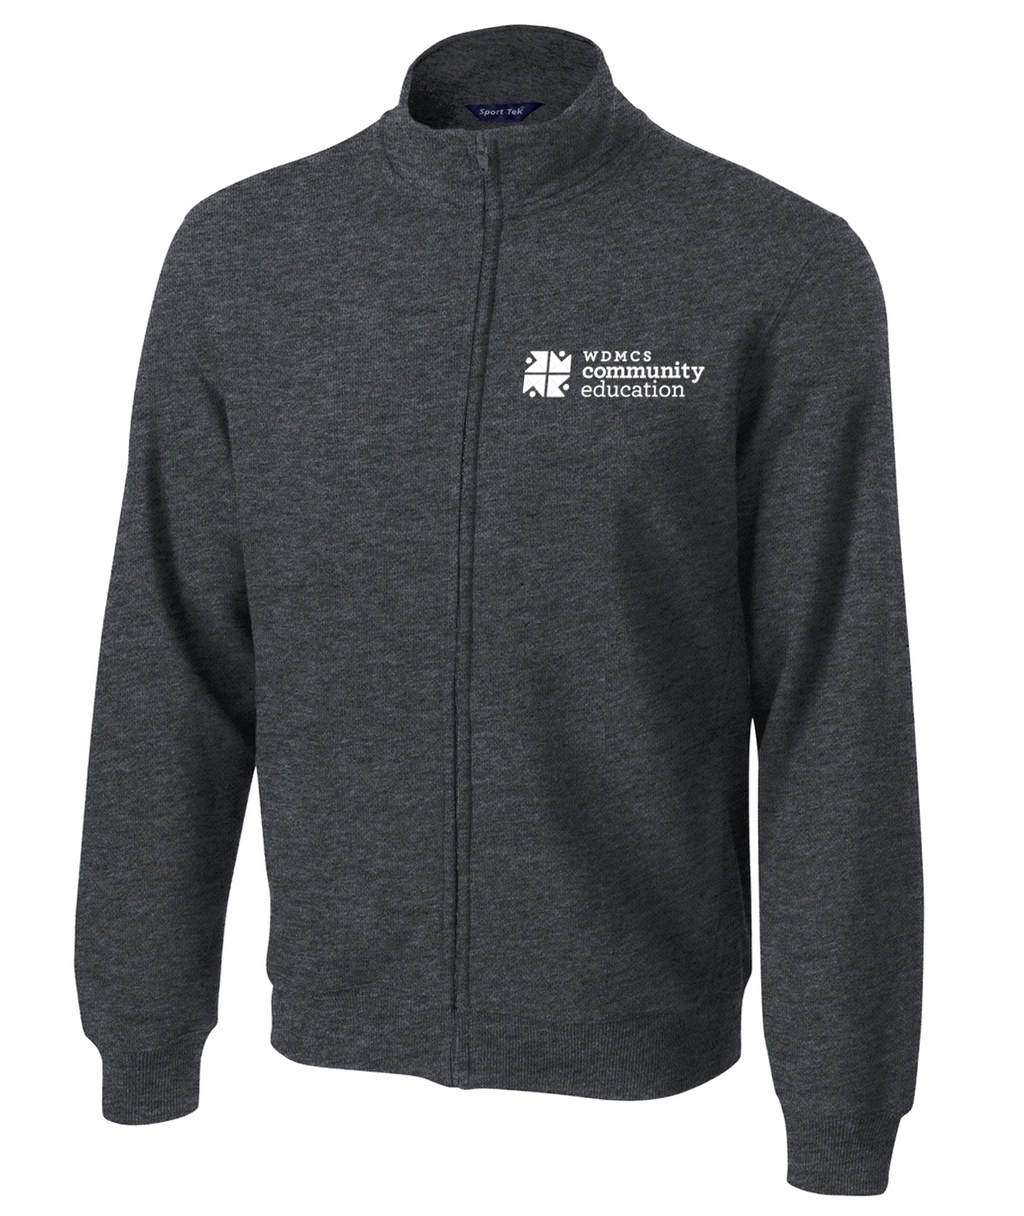 Community Ed Adult Full-Zip Sweatshirt